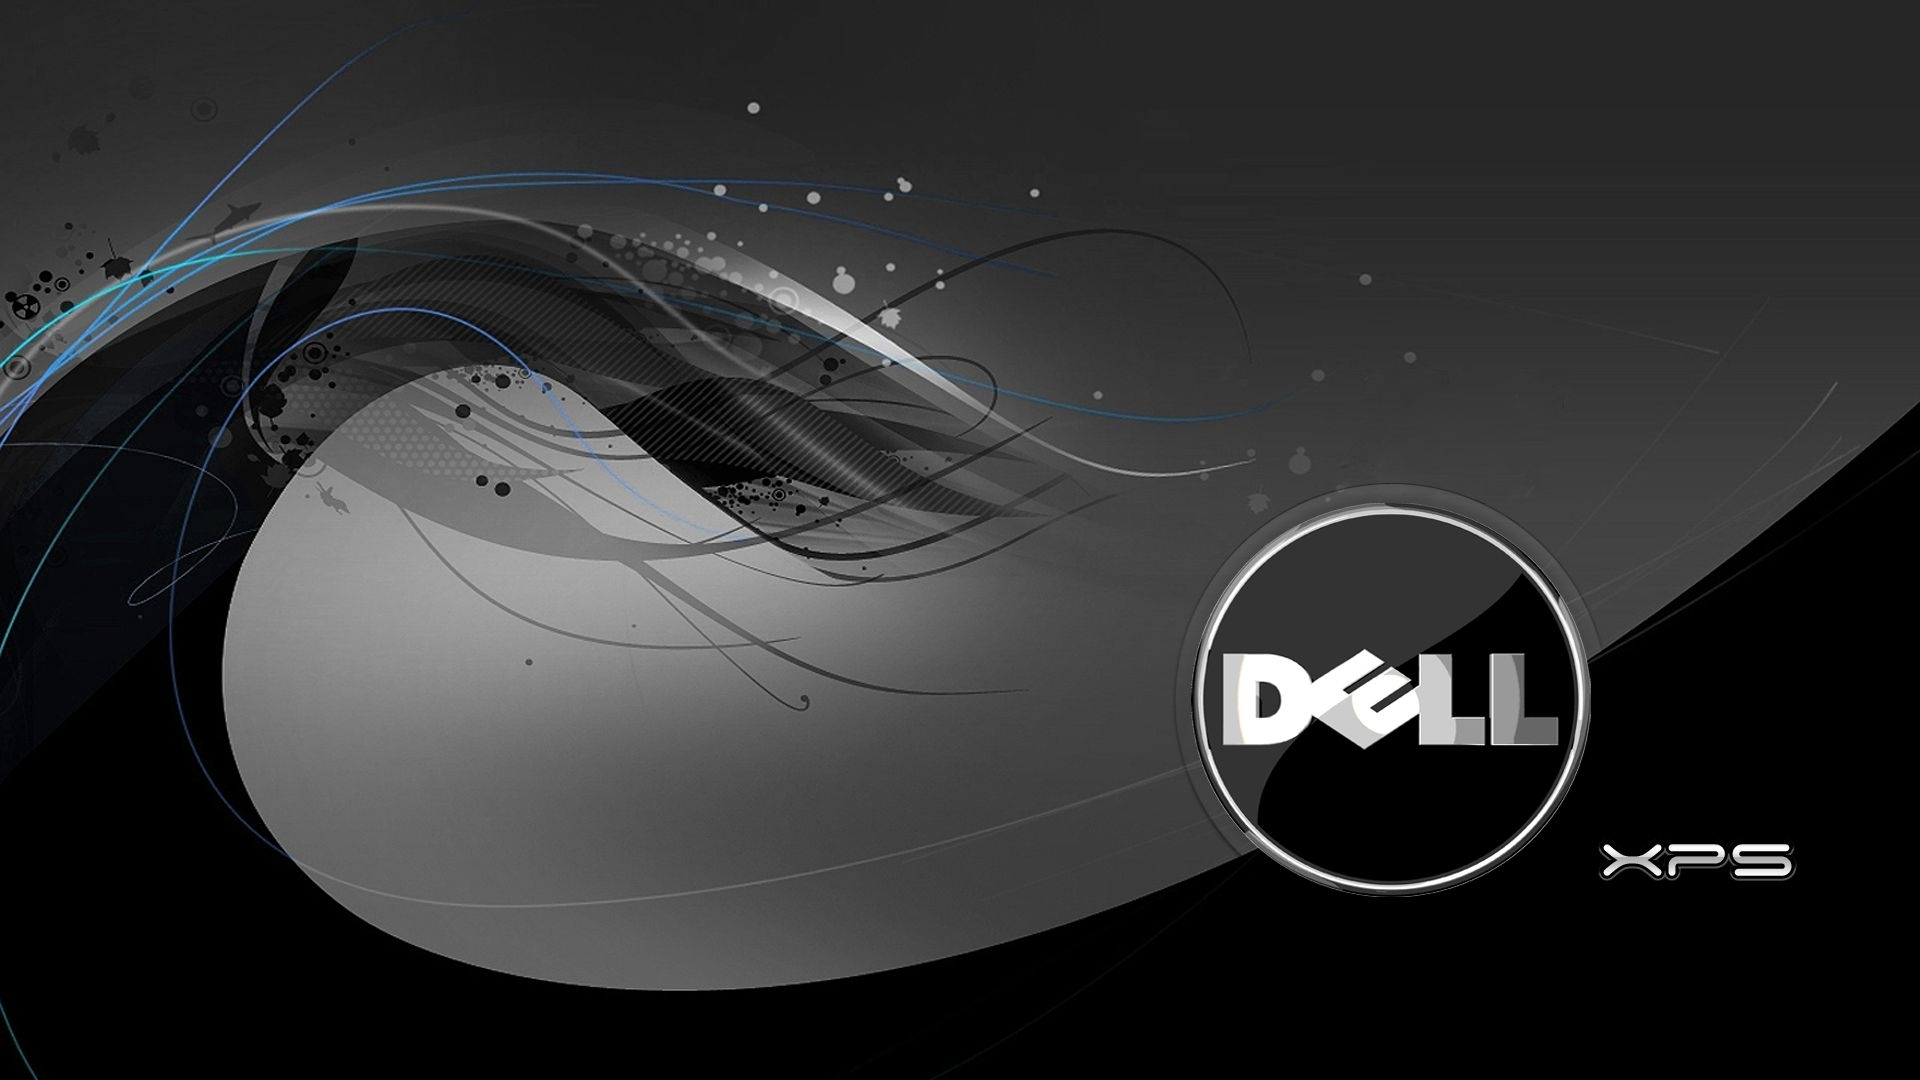 dell wallpapers for free download 1920×1080 dell wallpapers (54